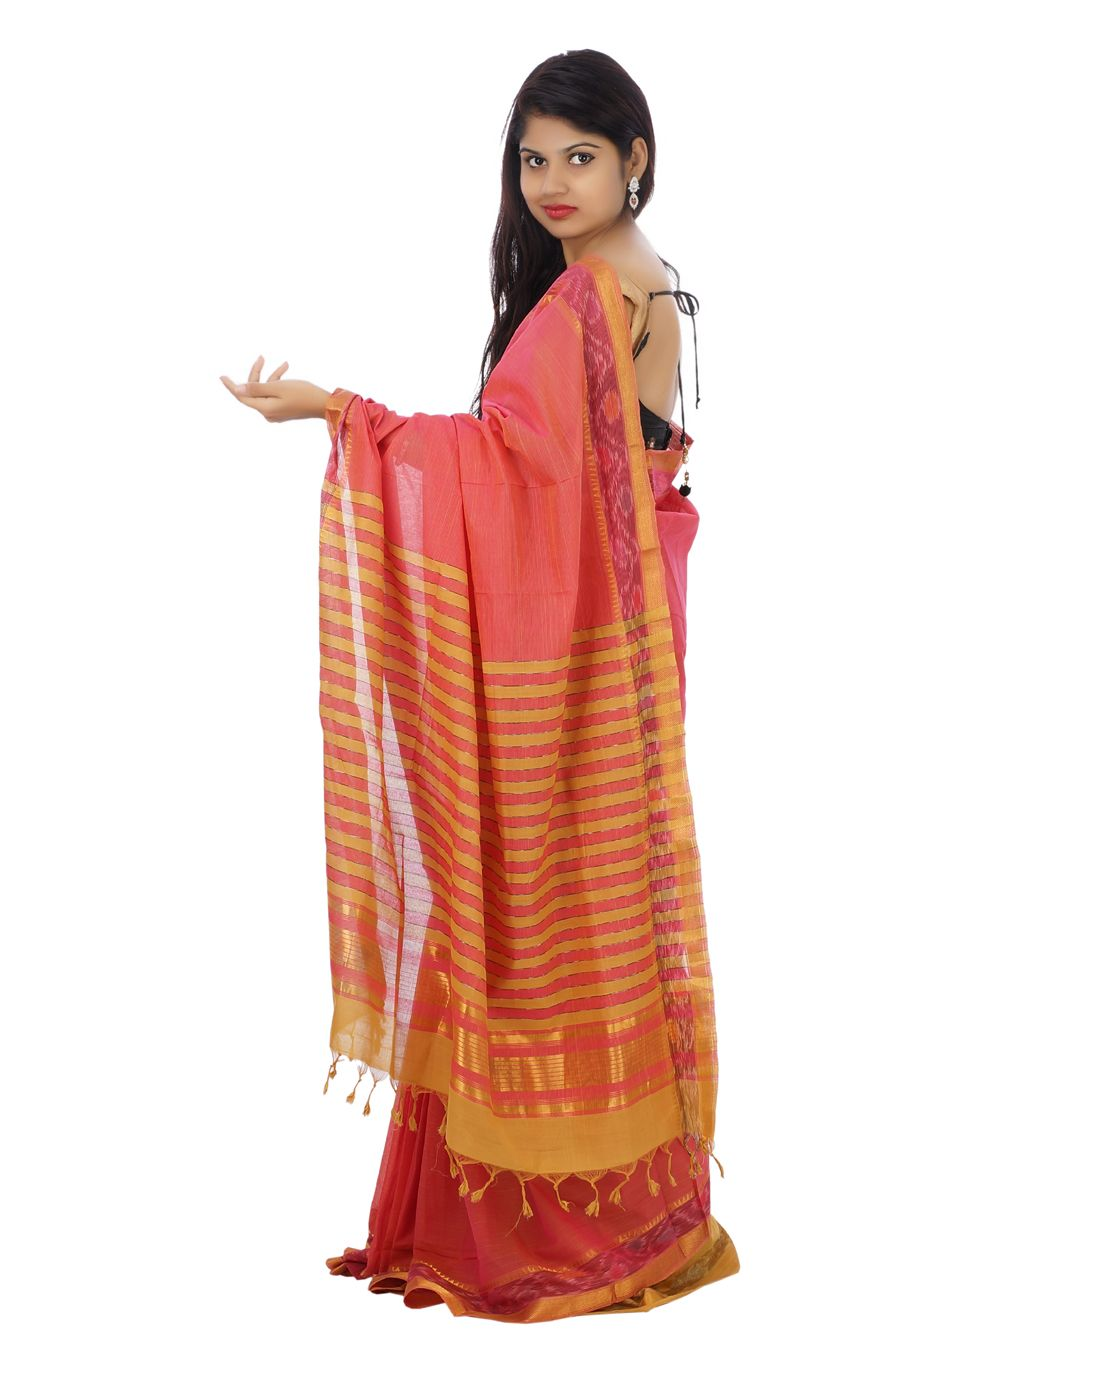 d281436db33 Dark pink Color Mangalagiri Cotton Saree with pochampally ikat design on  border- side view